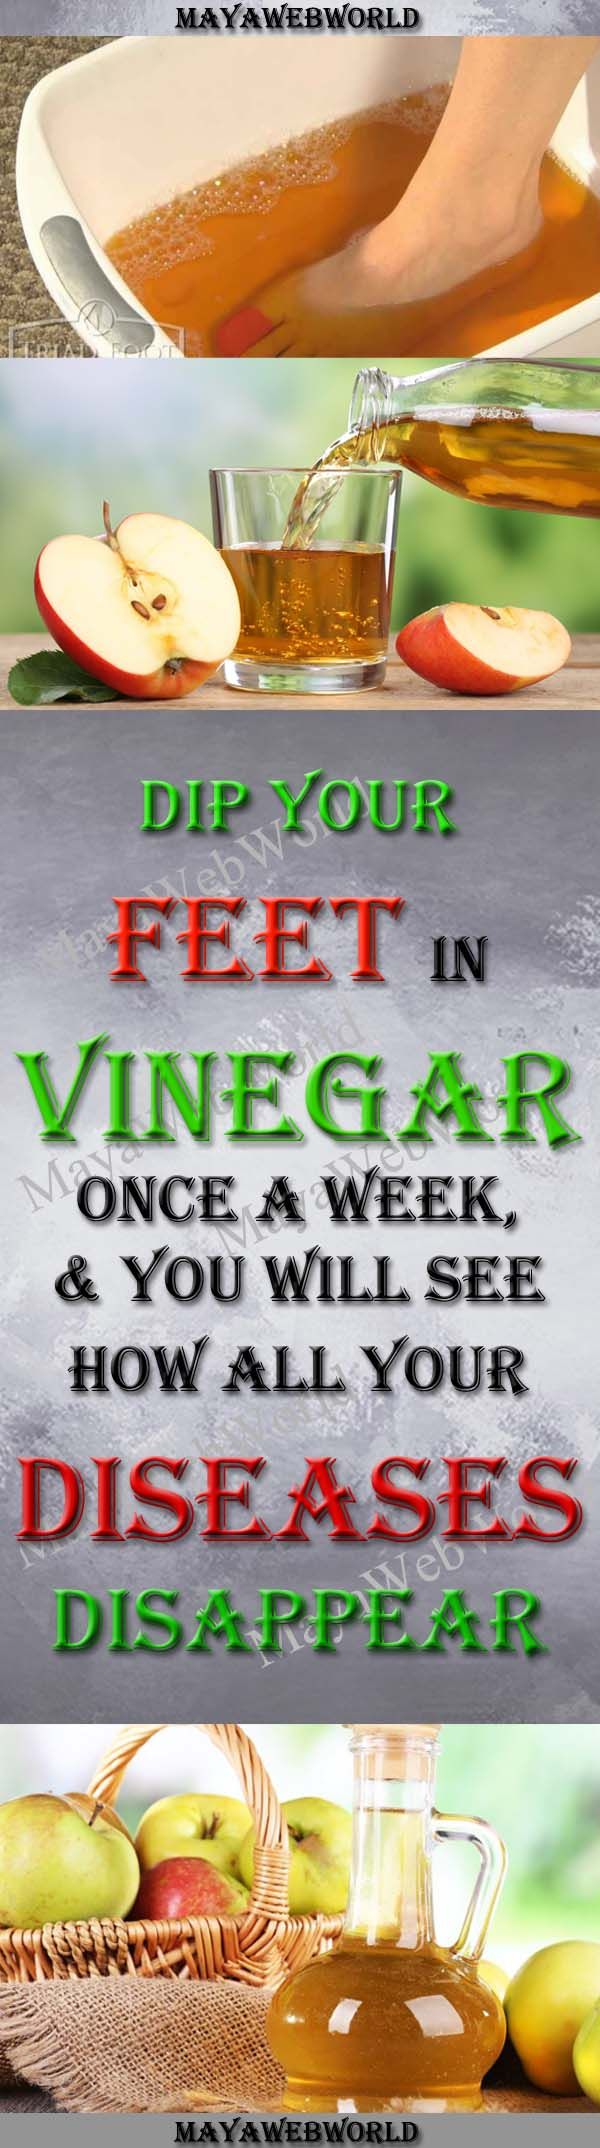 Dip Your Feet In Vinegar Once A Week, and You Will See How All Your Diseases Disappear – MayaWebWorld